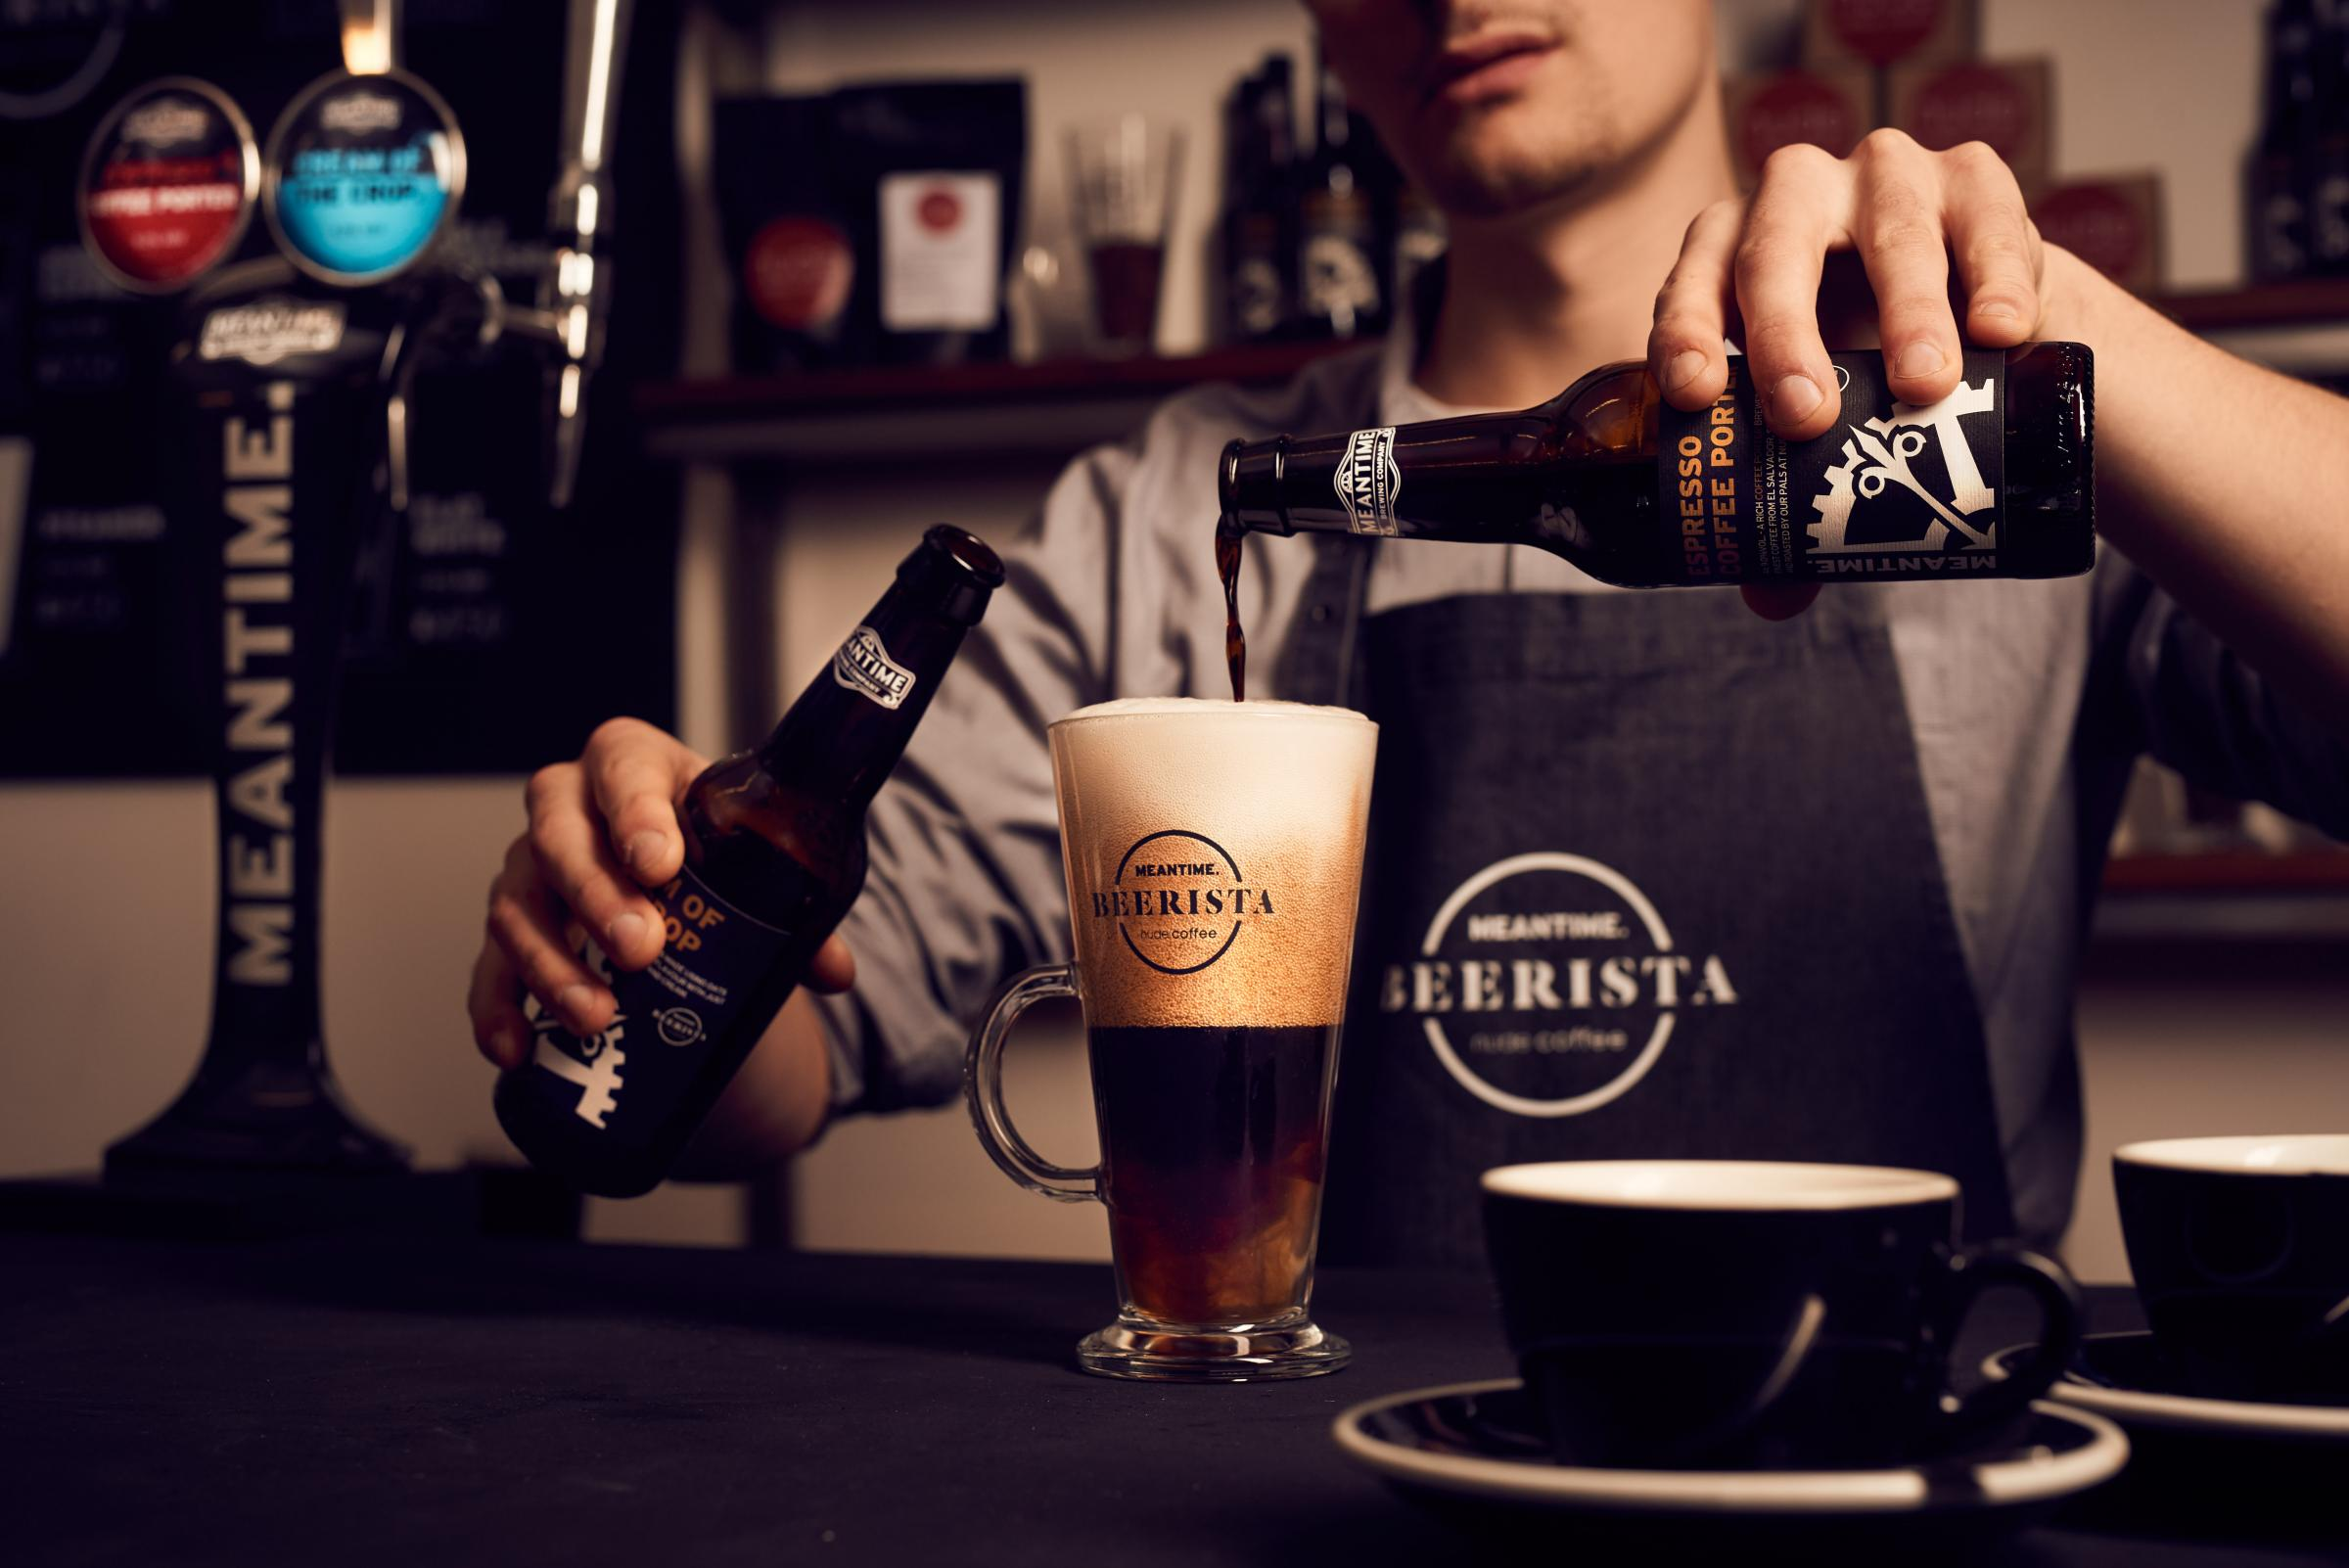 Latt-ale is the new phenomenon for coffee and beer connoisseurs